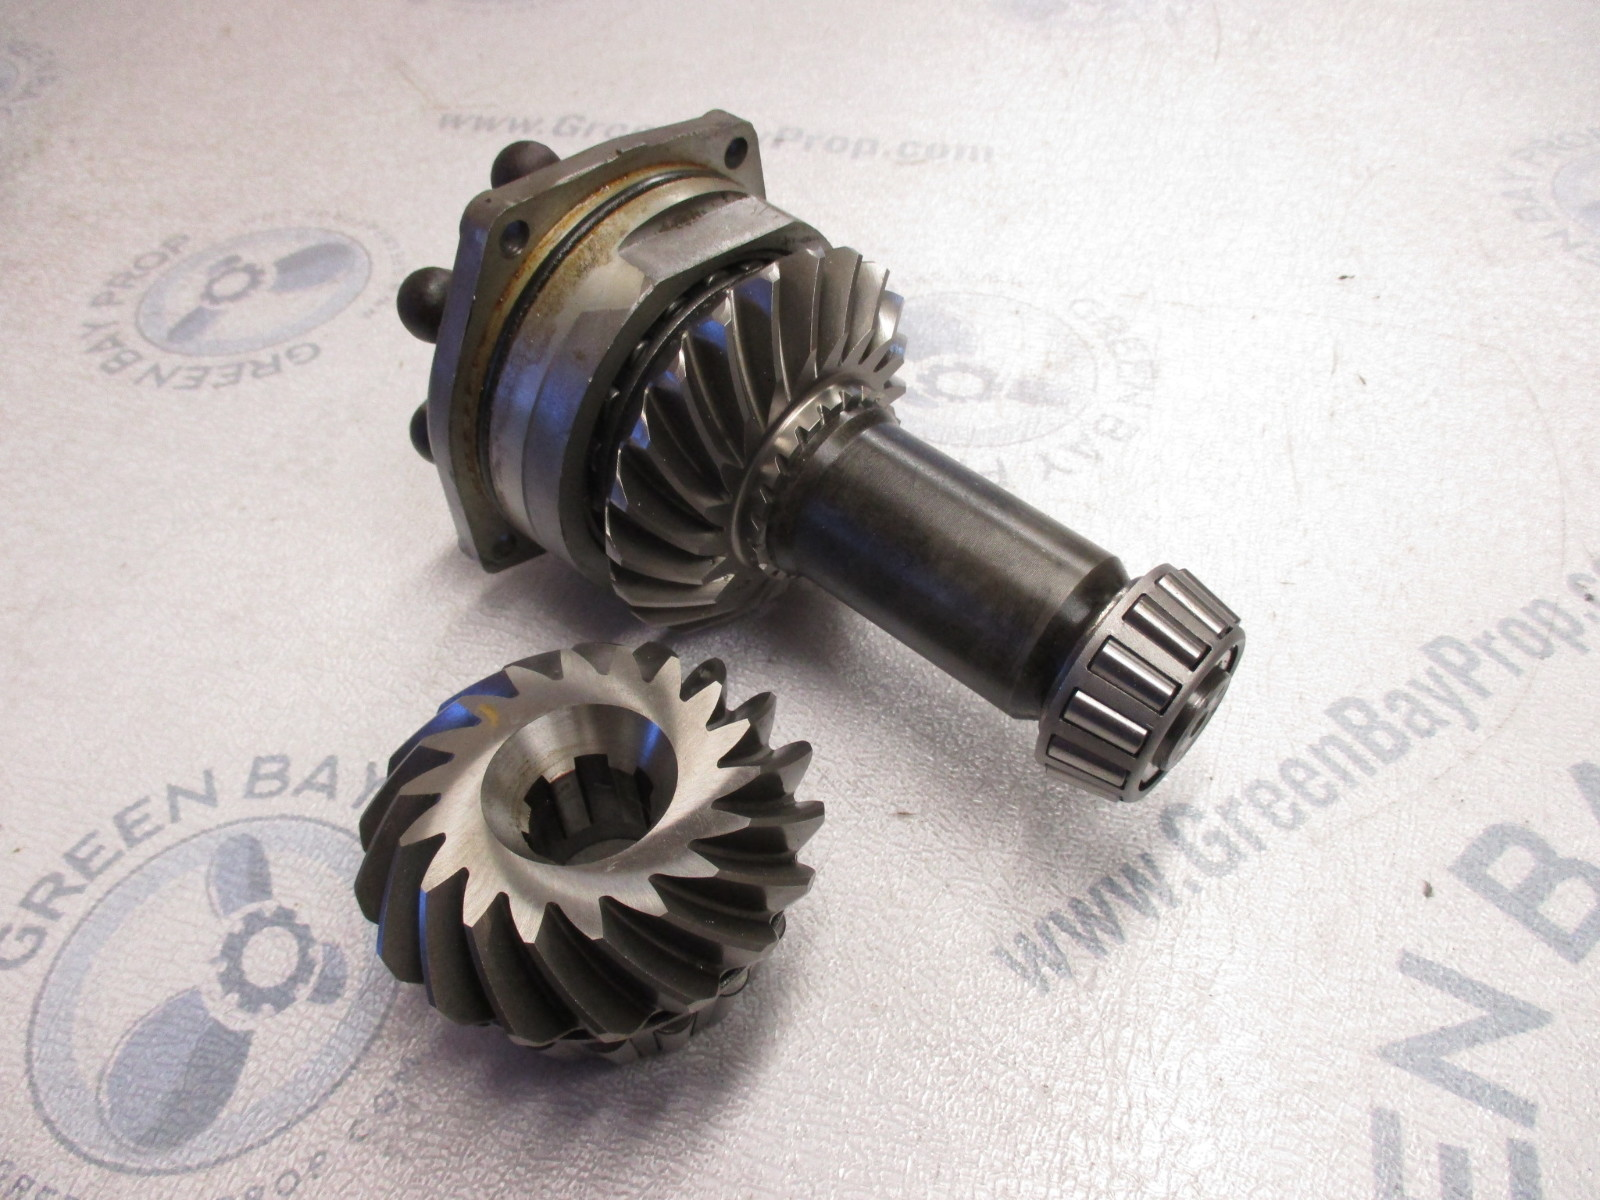 982835 982738 OMC Stringer Stern Drive Upper Unit Case Gear Set 21:18 1974-1985